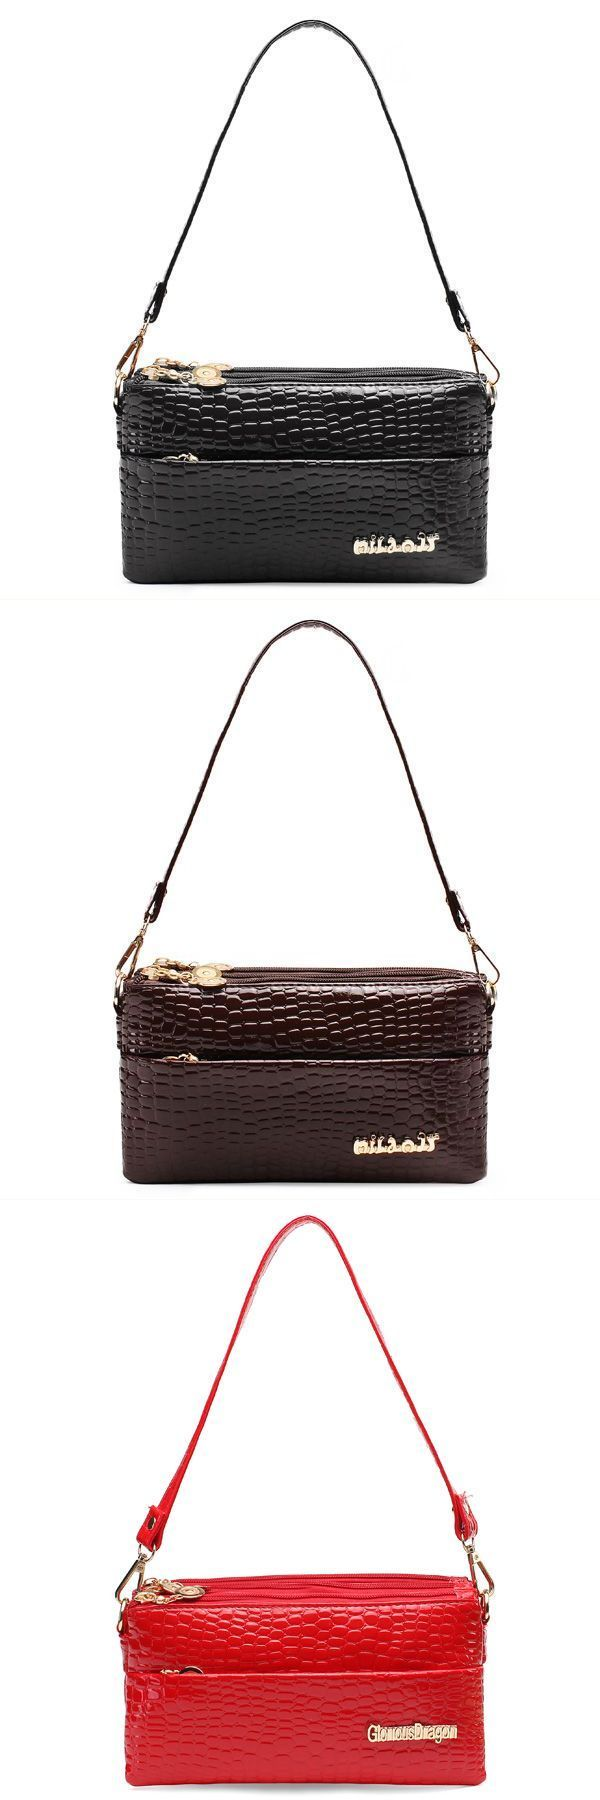 Clutch Bags For Wedding Guests Women 8217 S Crocodile Pu